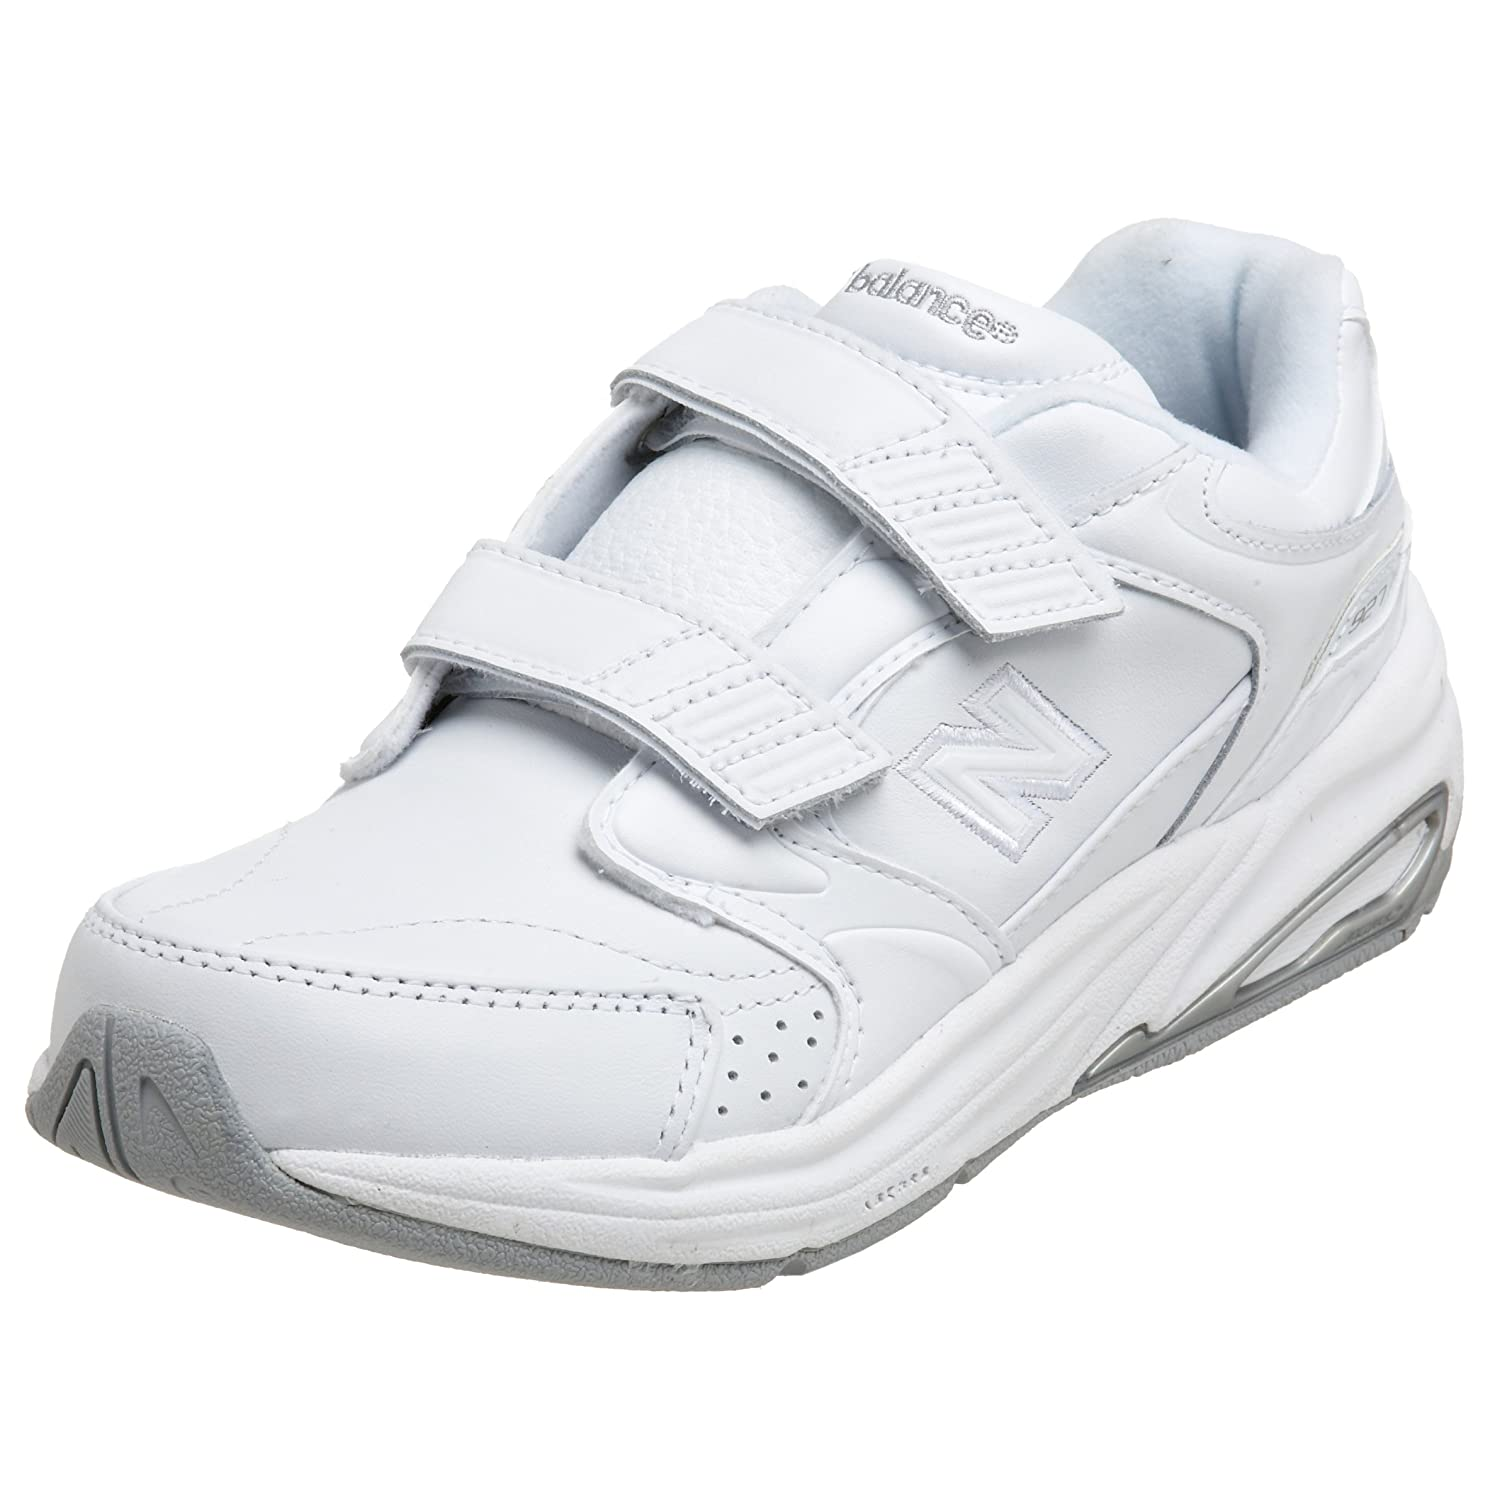 new balance walking shoes velcro. new balance walking shoes velcro s